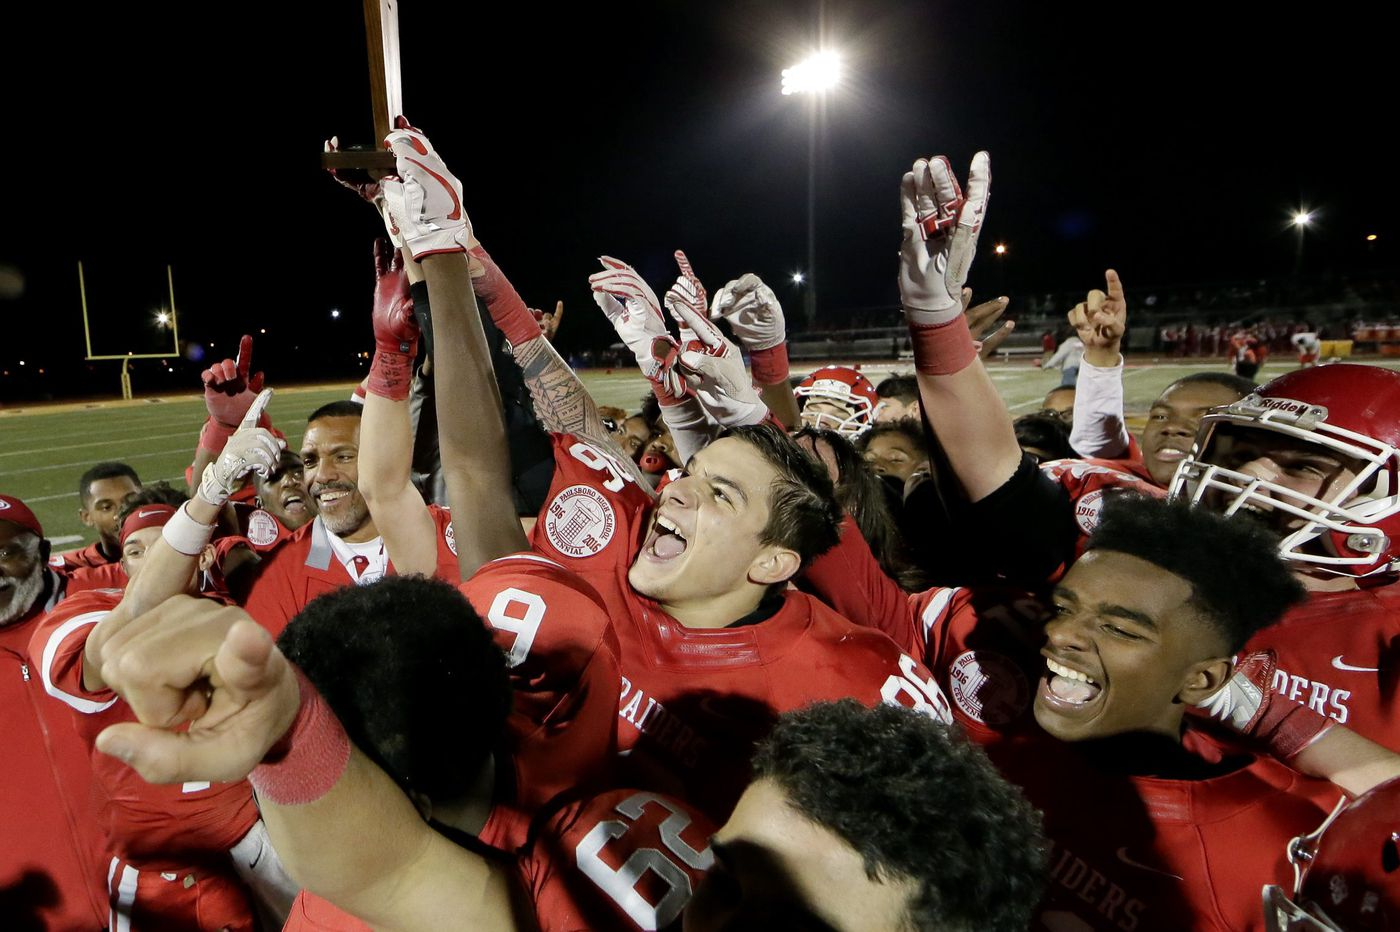 Paulsboro out to win another title | Training camp preview